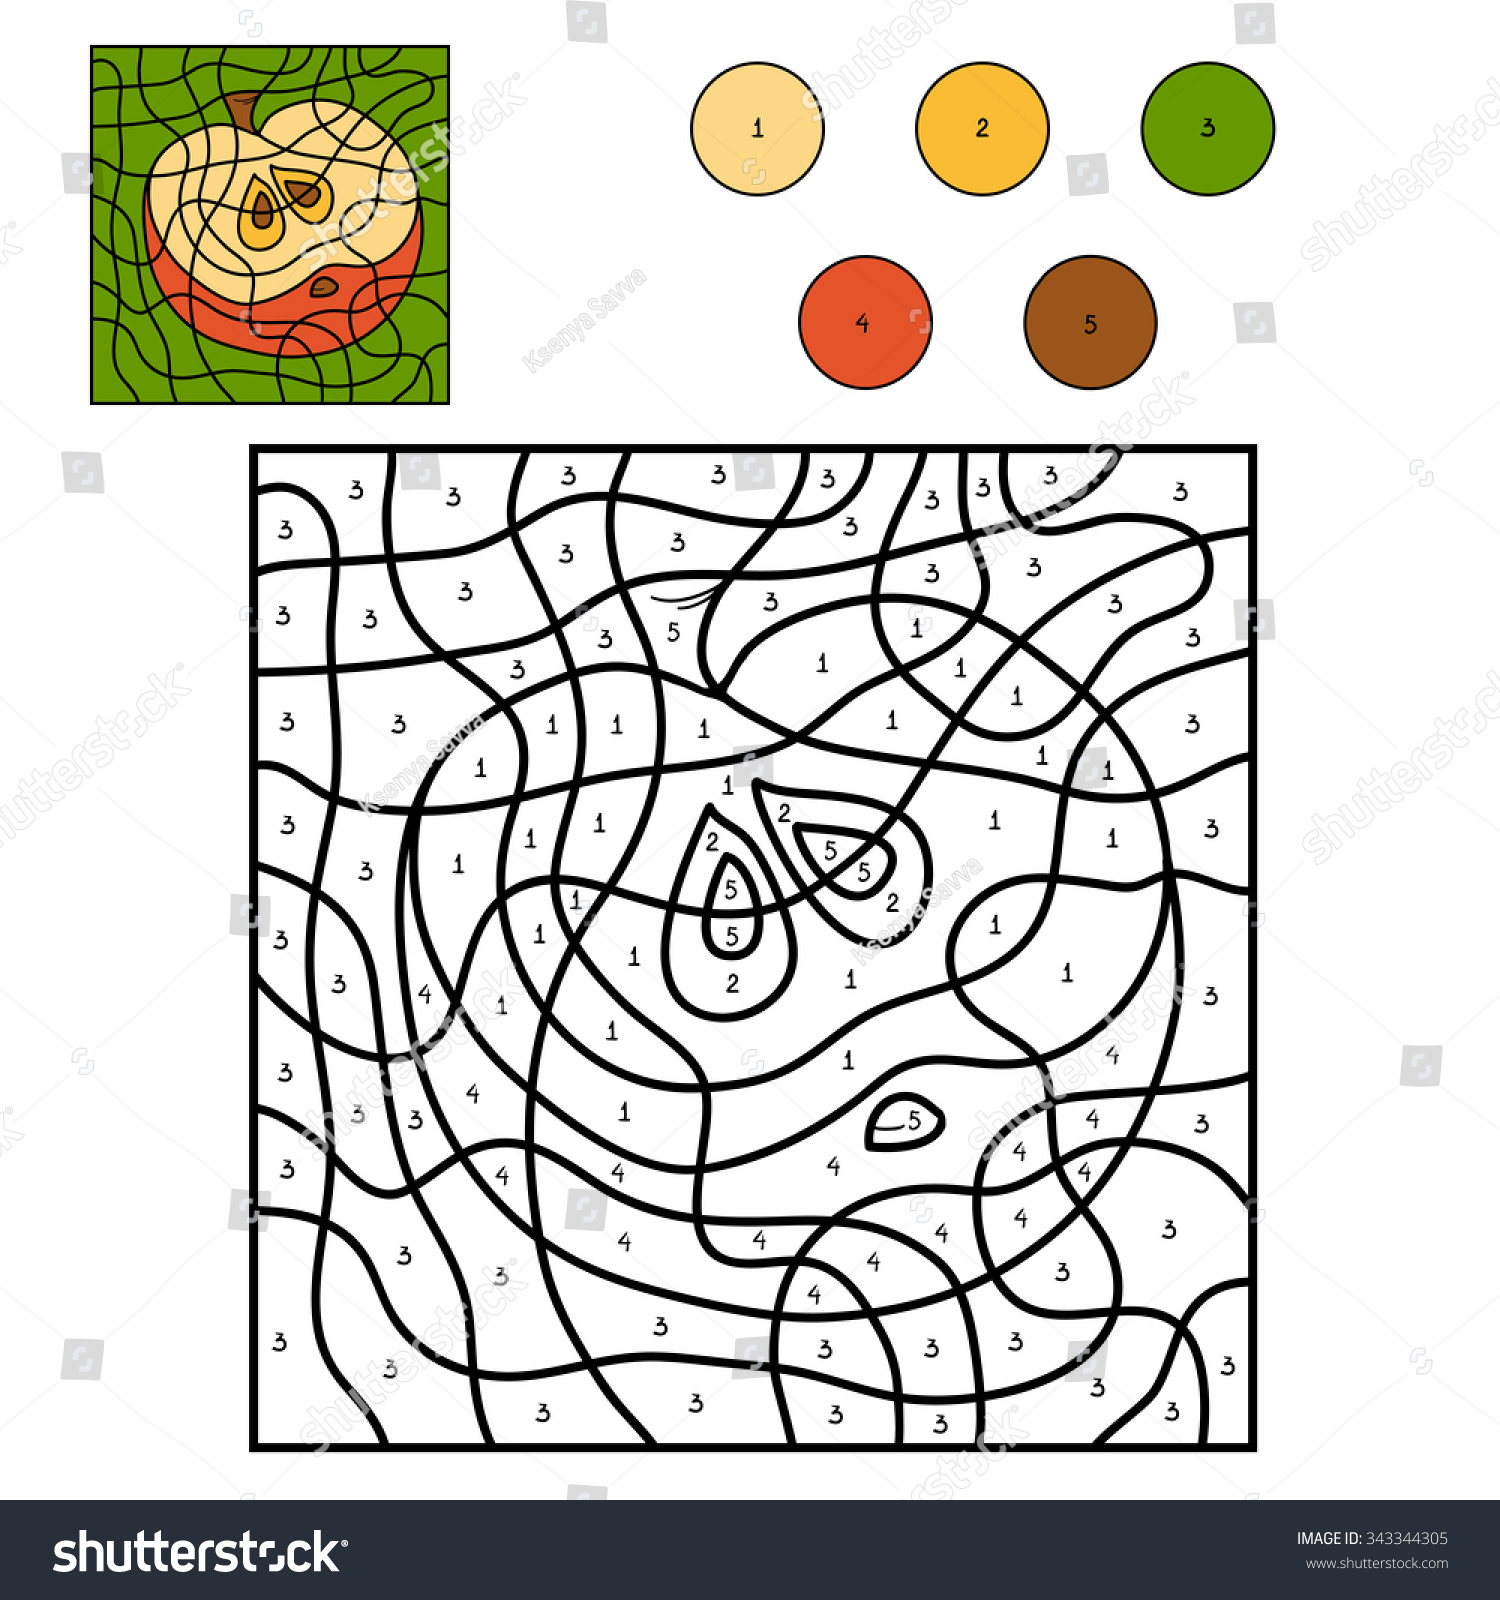 Game color by numbers - Color By Number Education Game For Children Fruits And Vegetables Apple